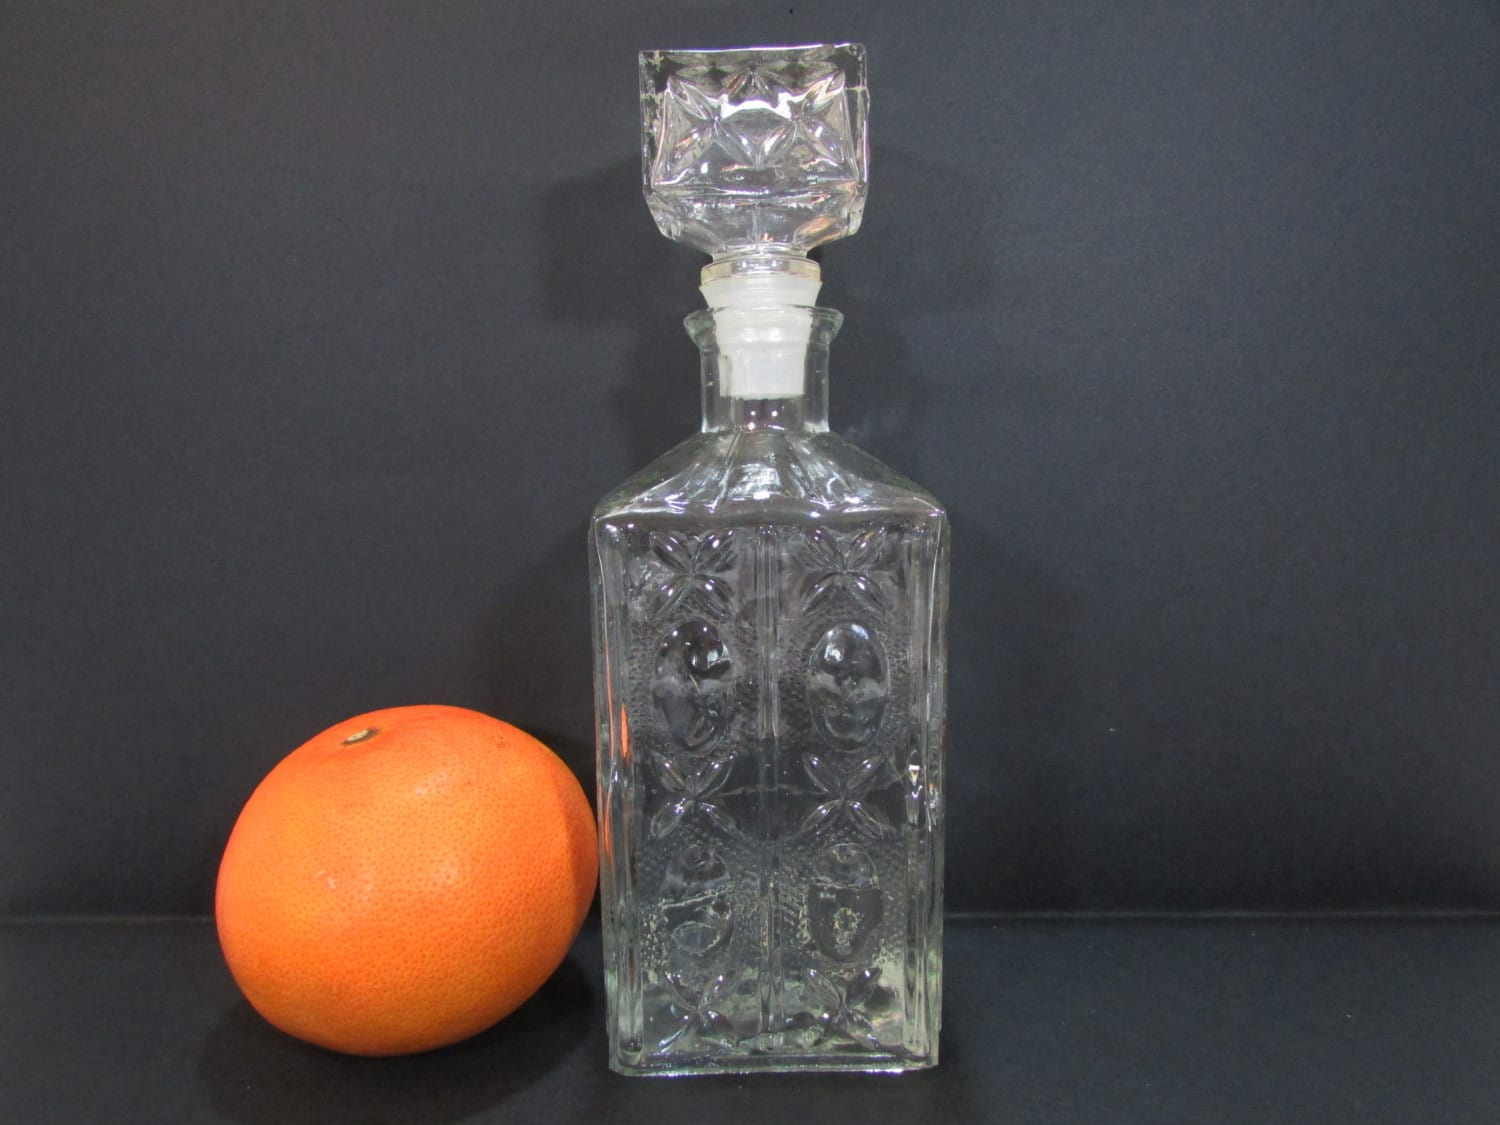 Vintage Decanter Alchol